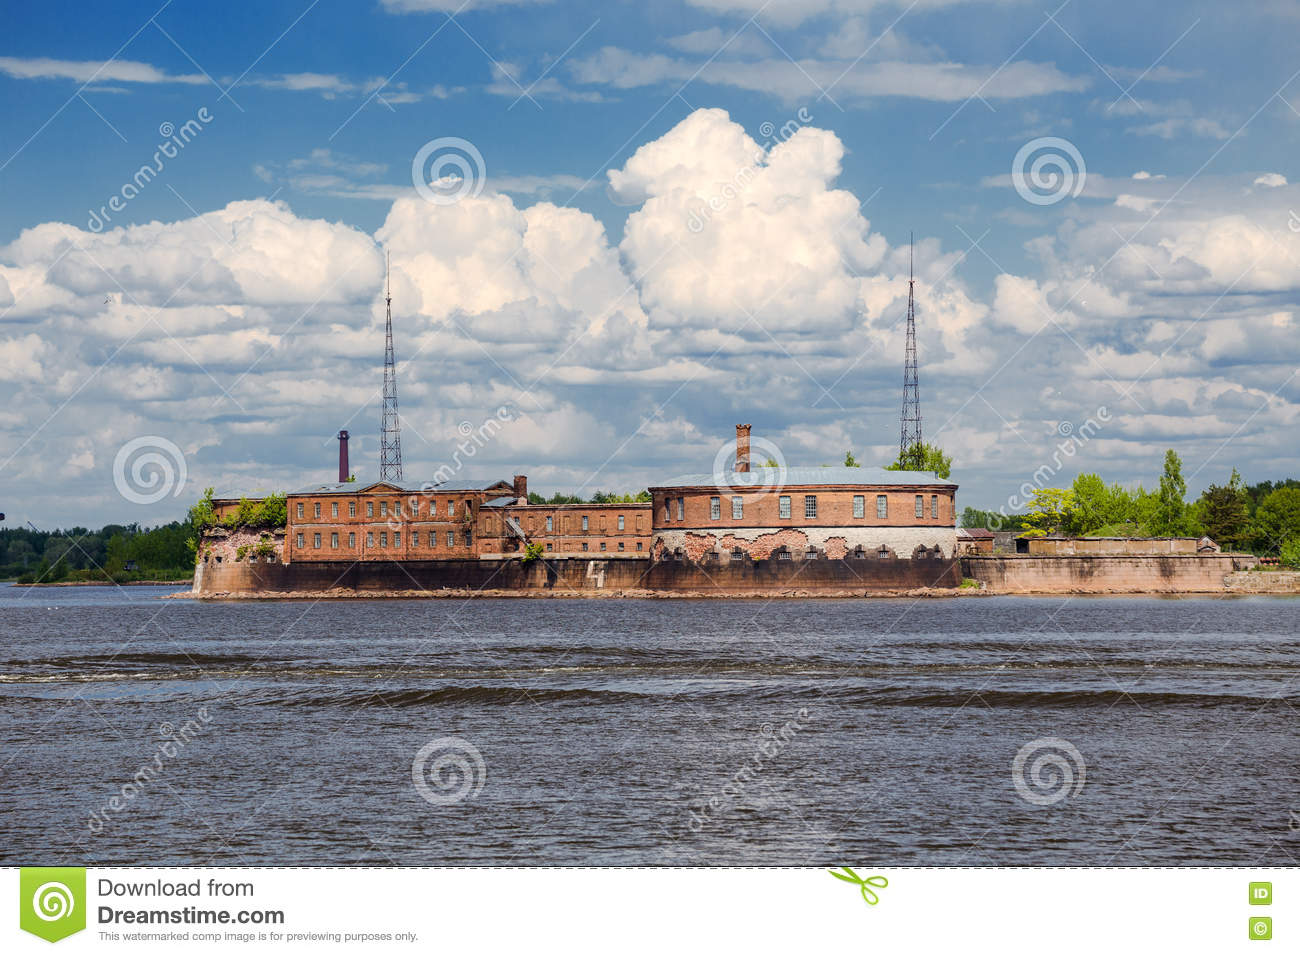 Emperor Peter the firs fort in the Gulf of Finland, Russia